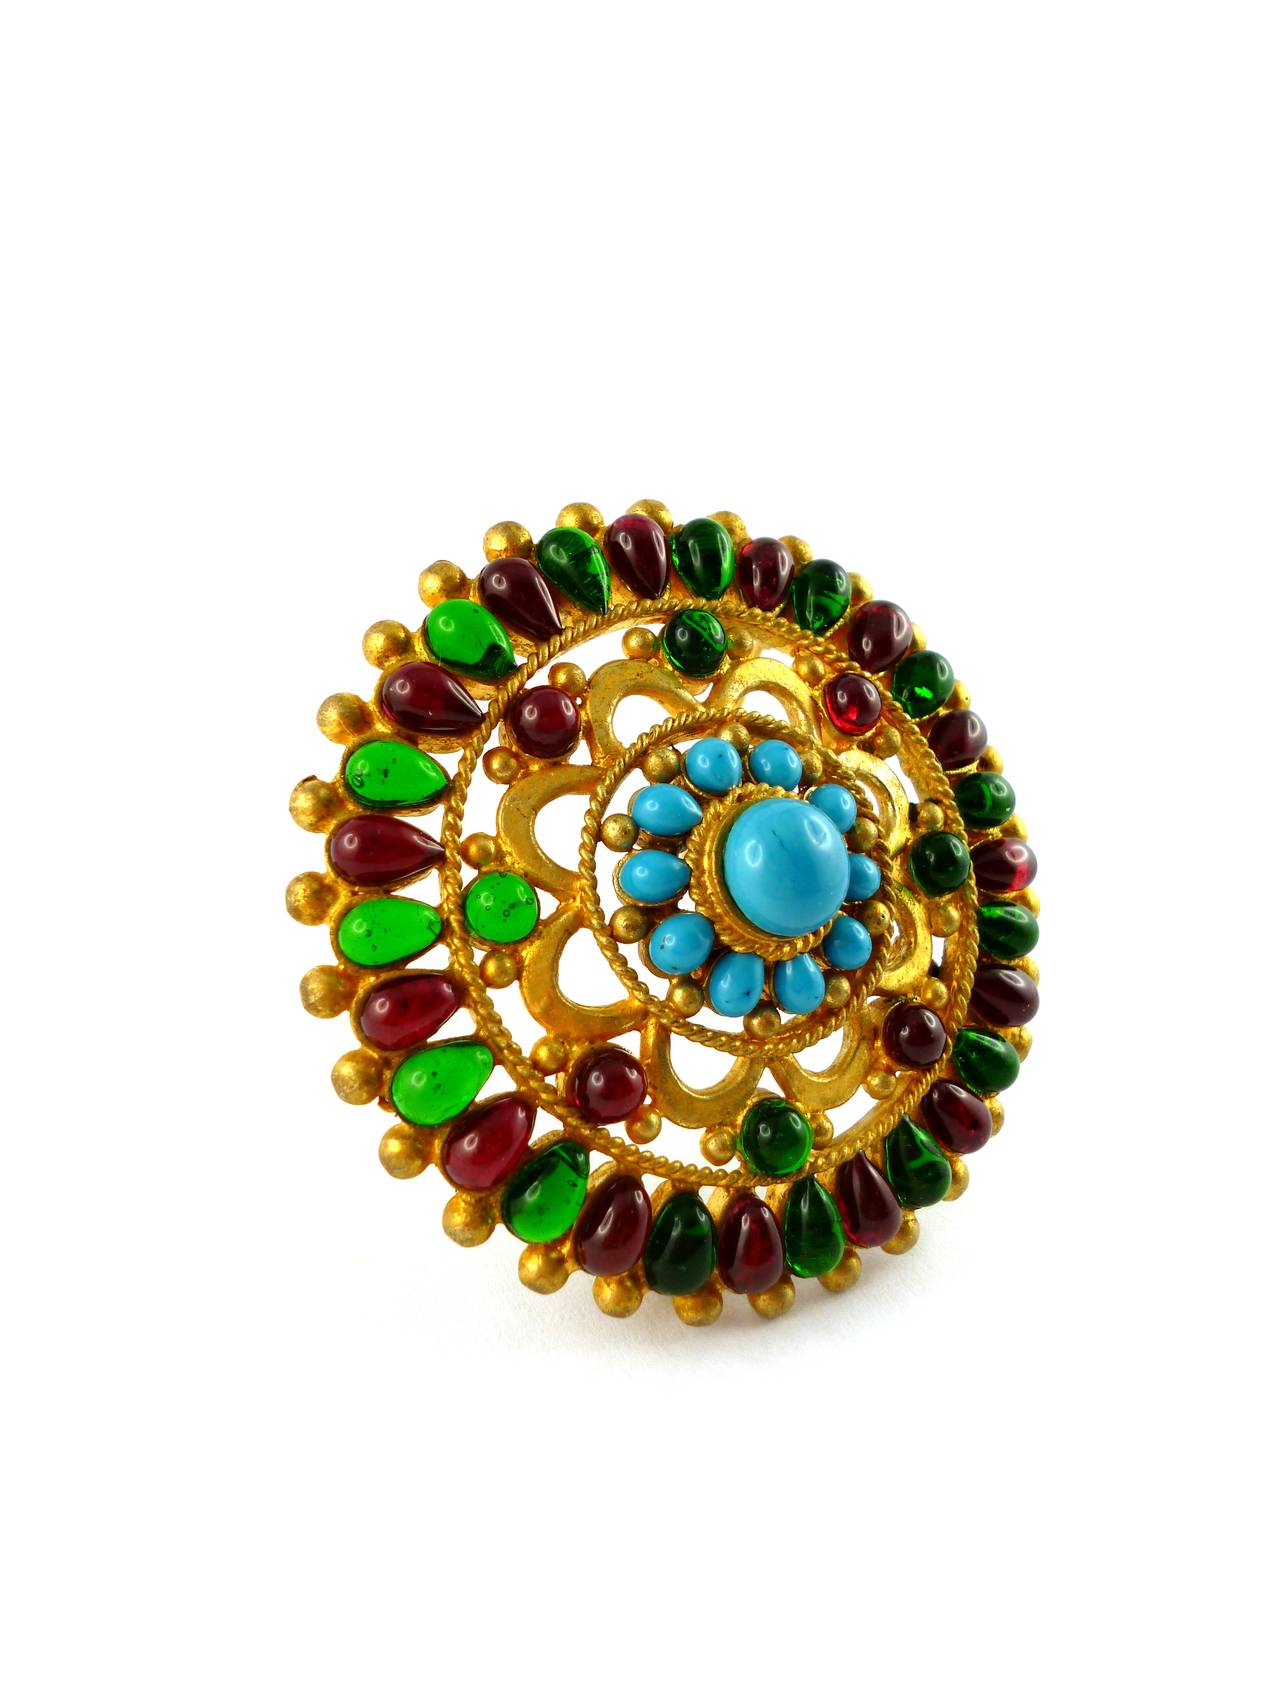 Chanel Massive Gripoix Mughal Brooch Pendant Fall 1993 In Good Condition For Sale In French Riviera, FR